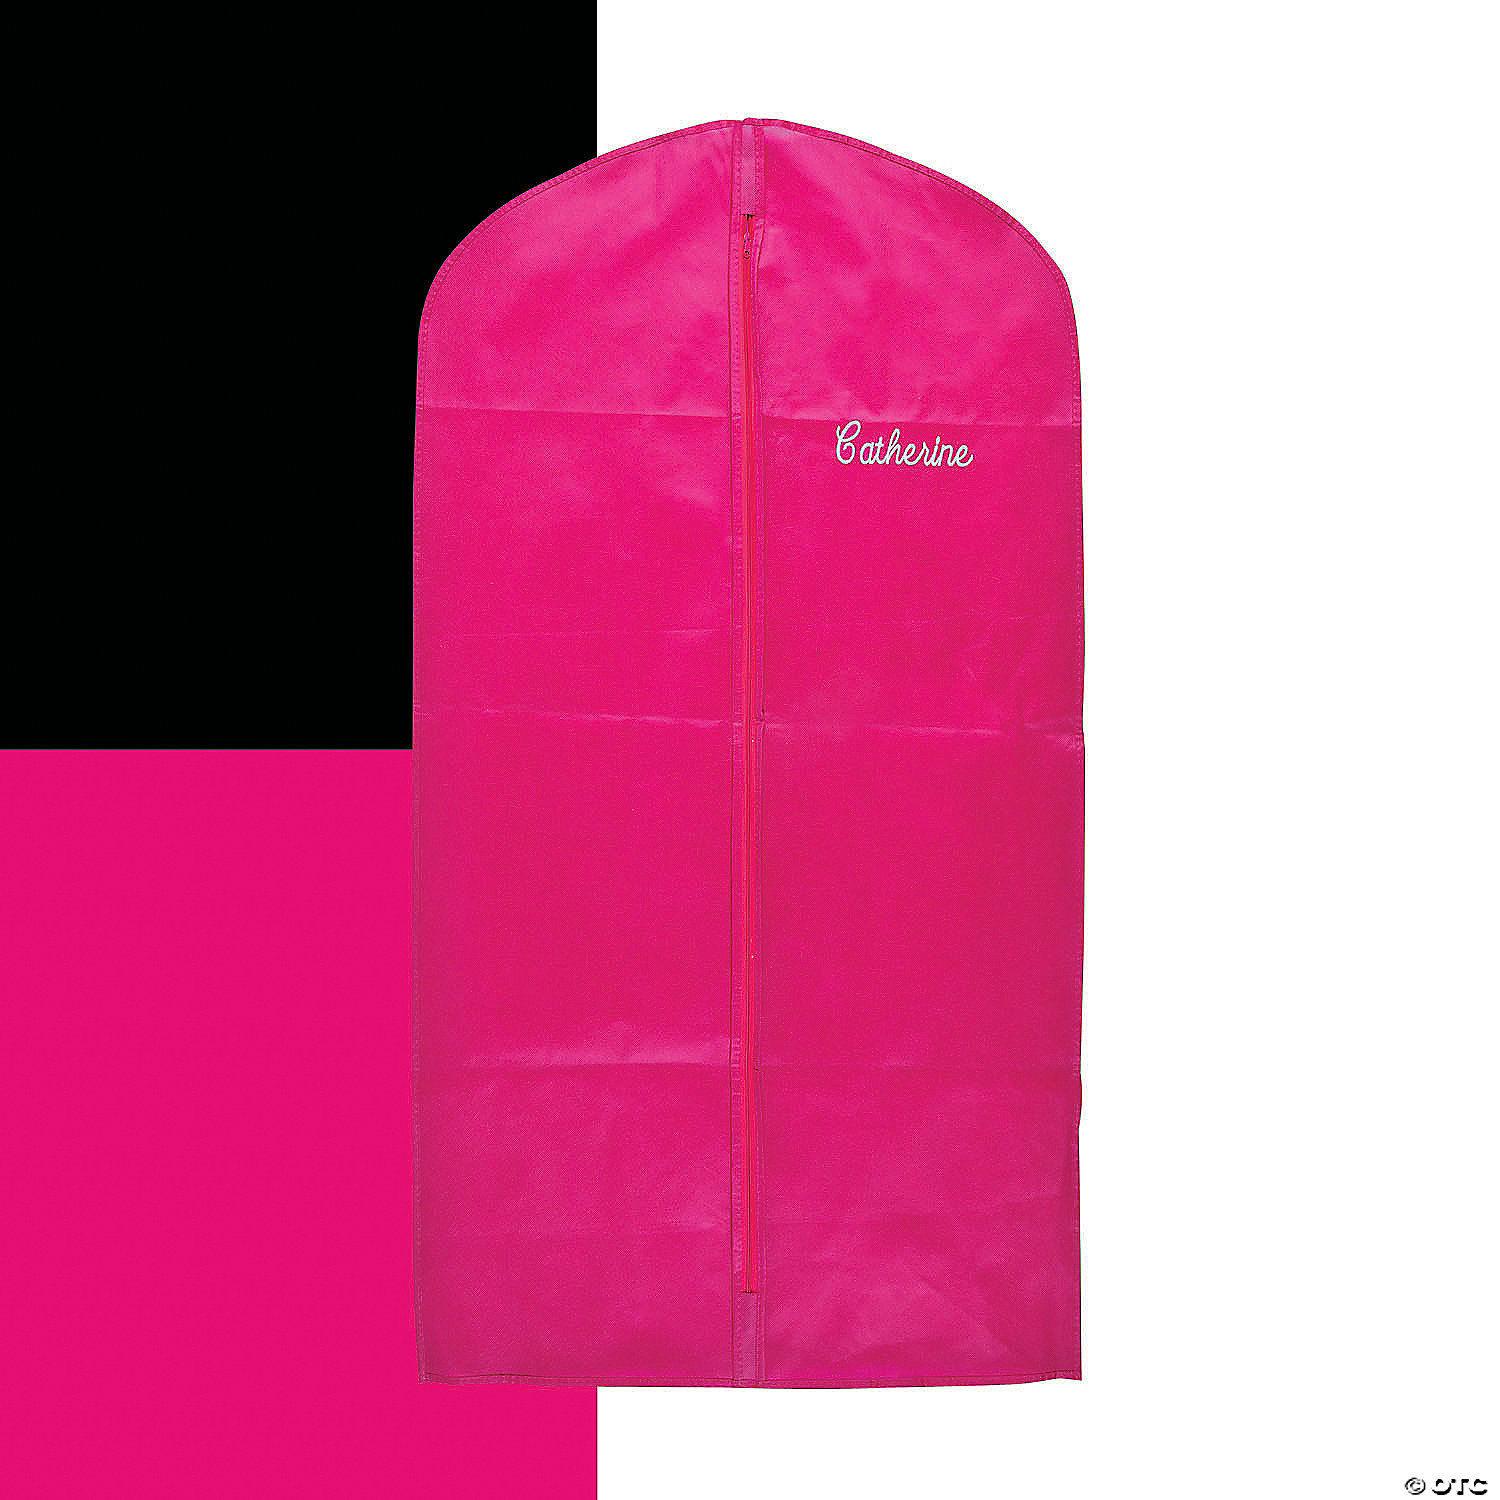 Personalized Garment Bag With Zipper